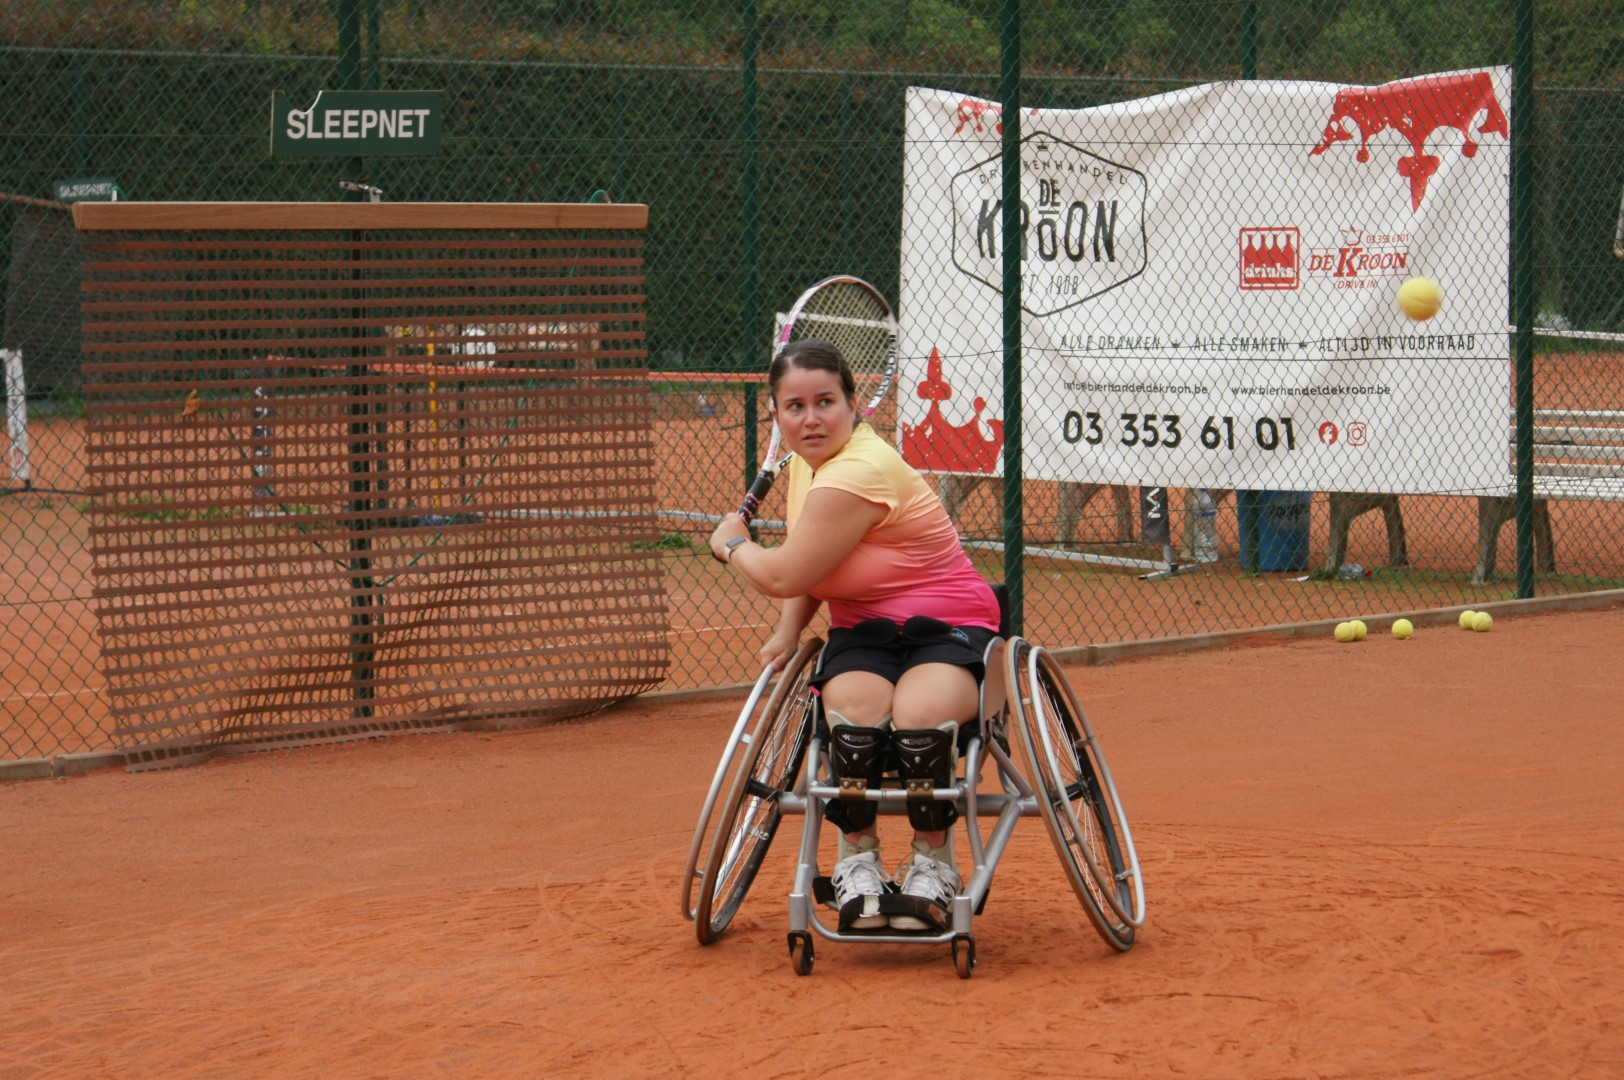 Sofie Cox - playing tennis on claycourt